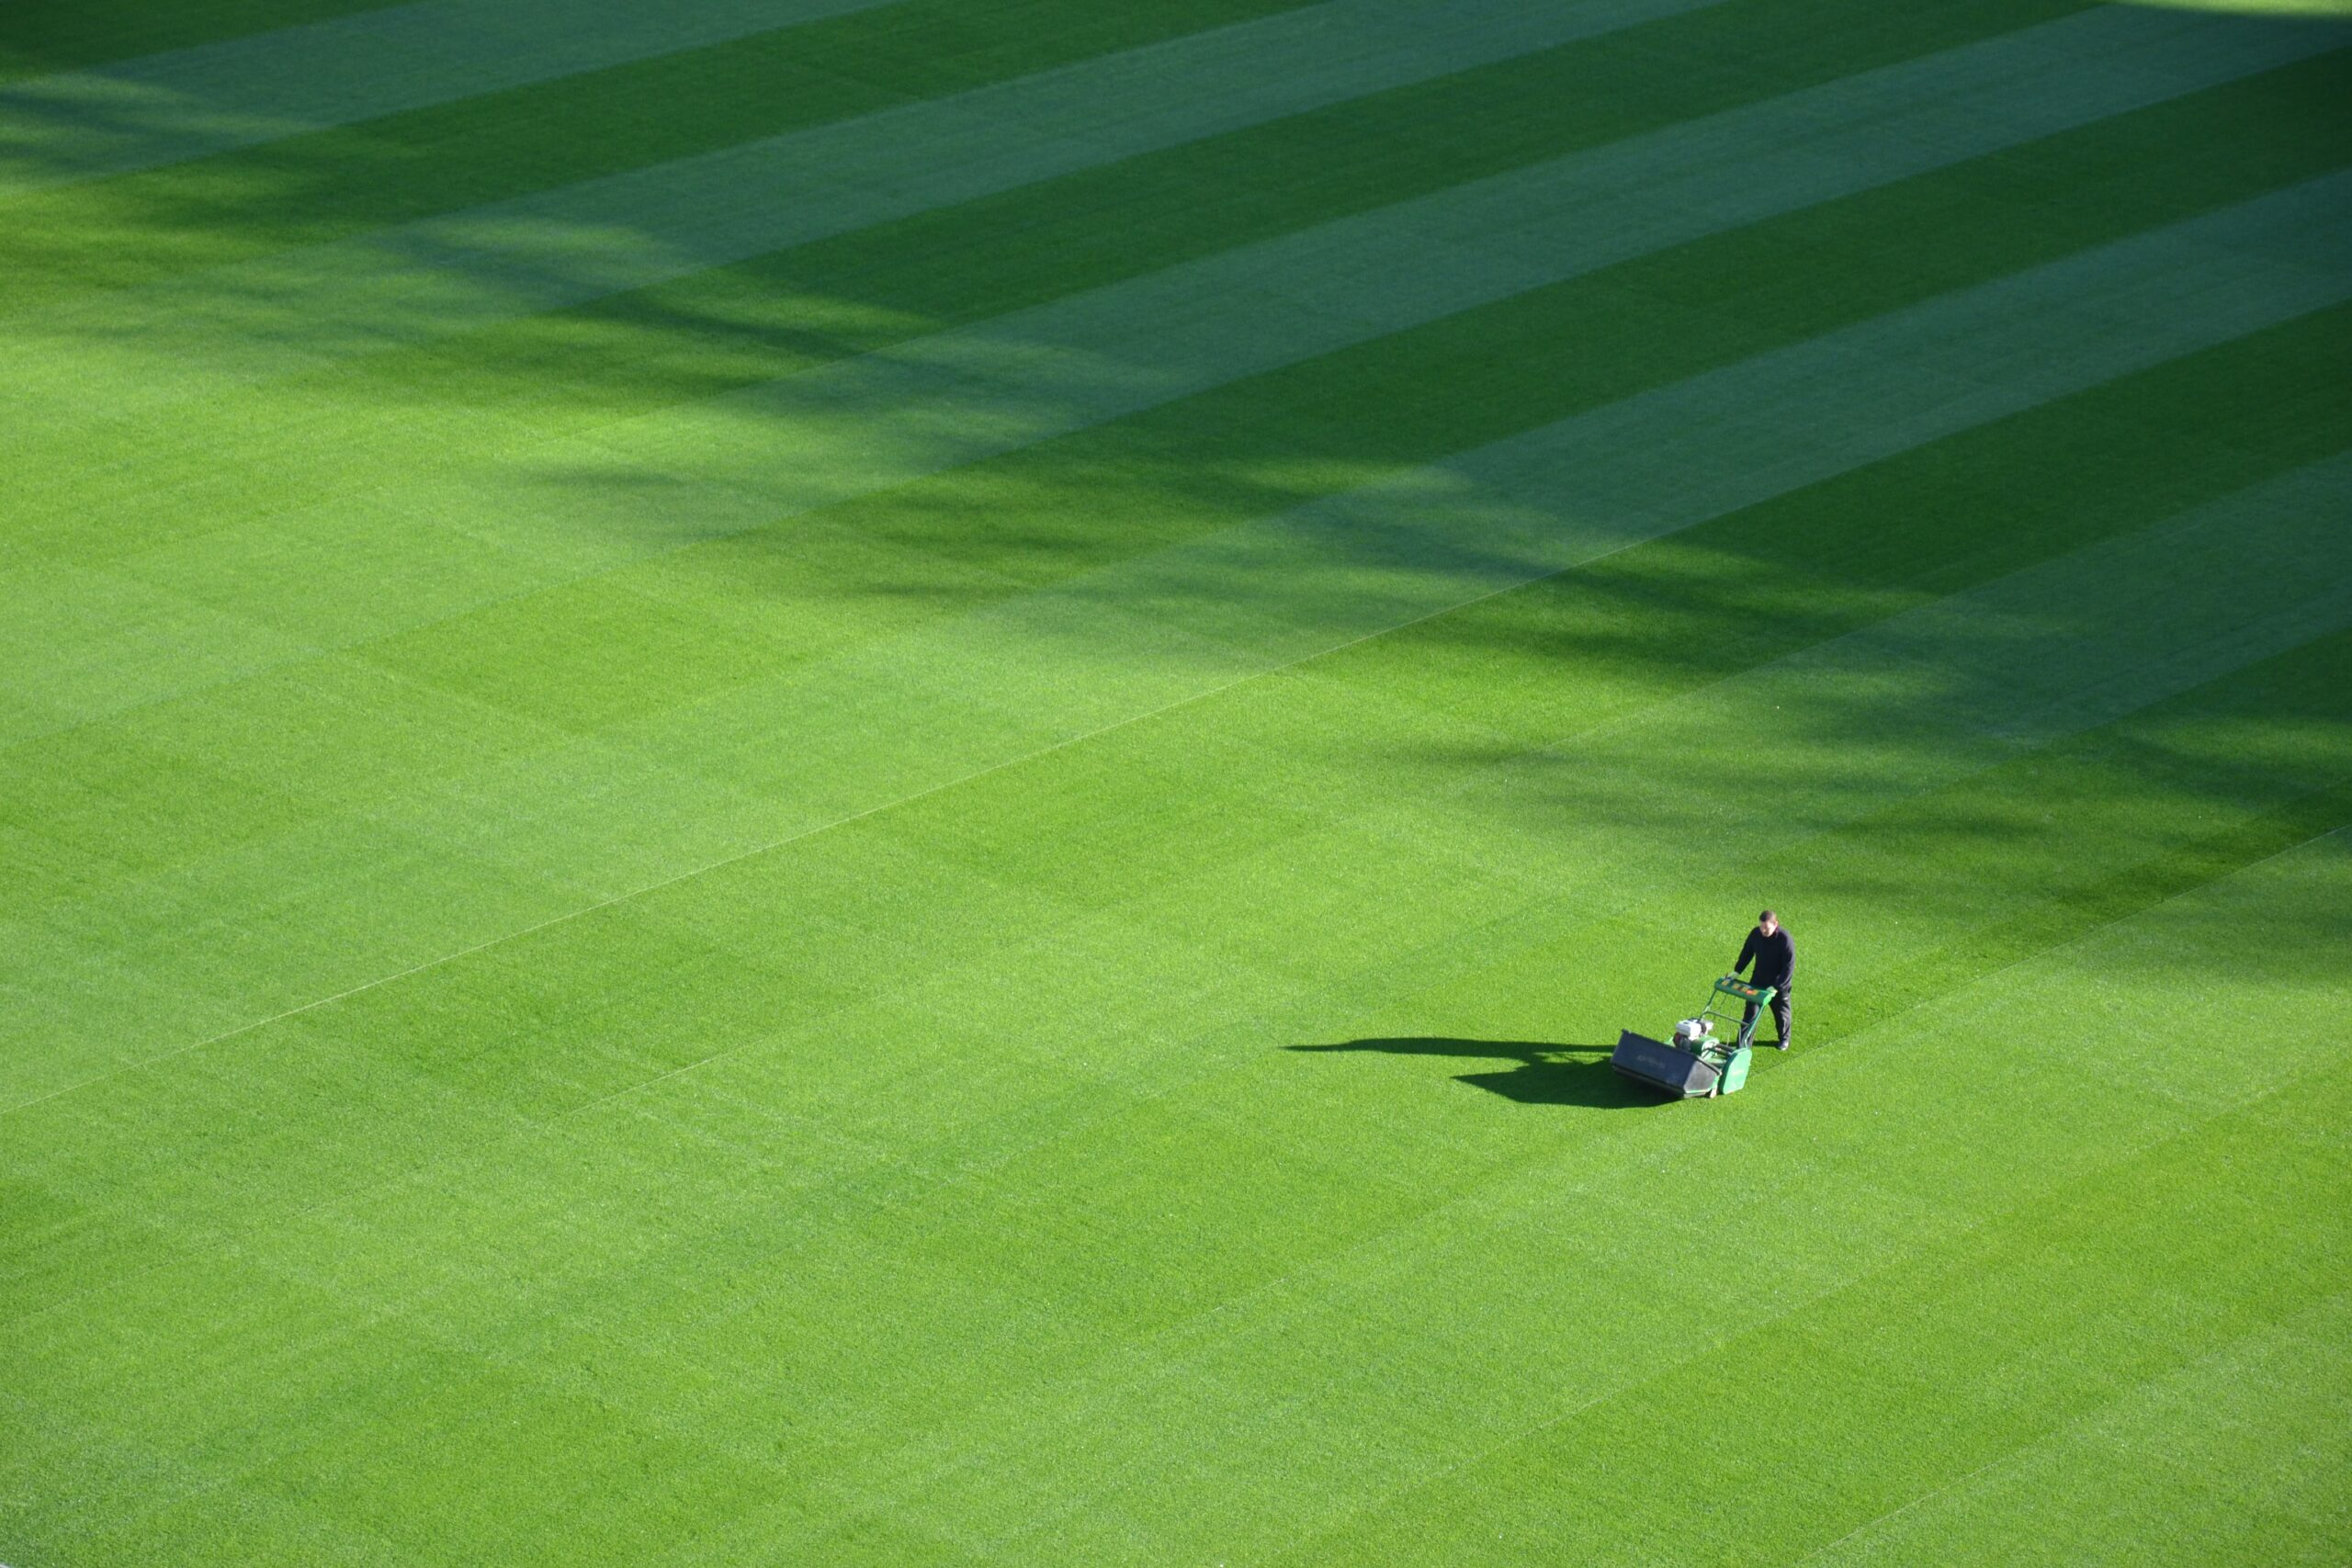 Landscaper mowing a flat, green lawn in a crisscross pattern